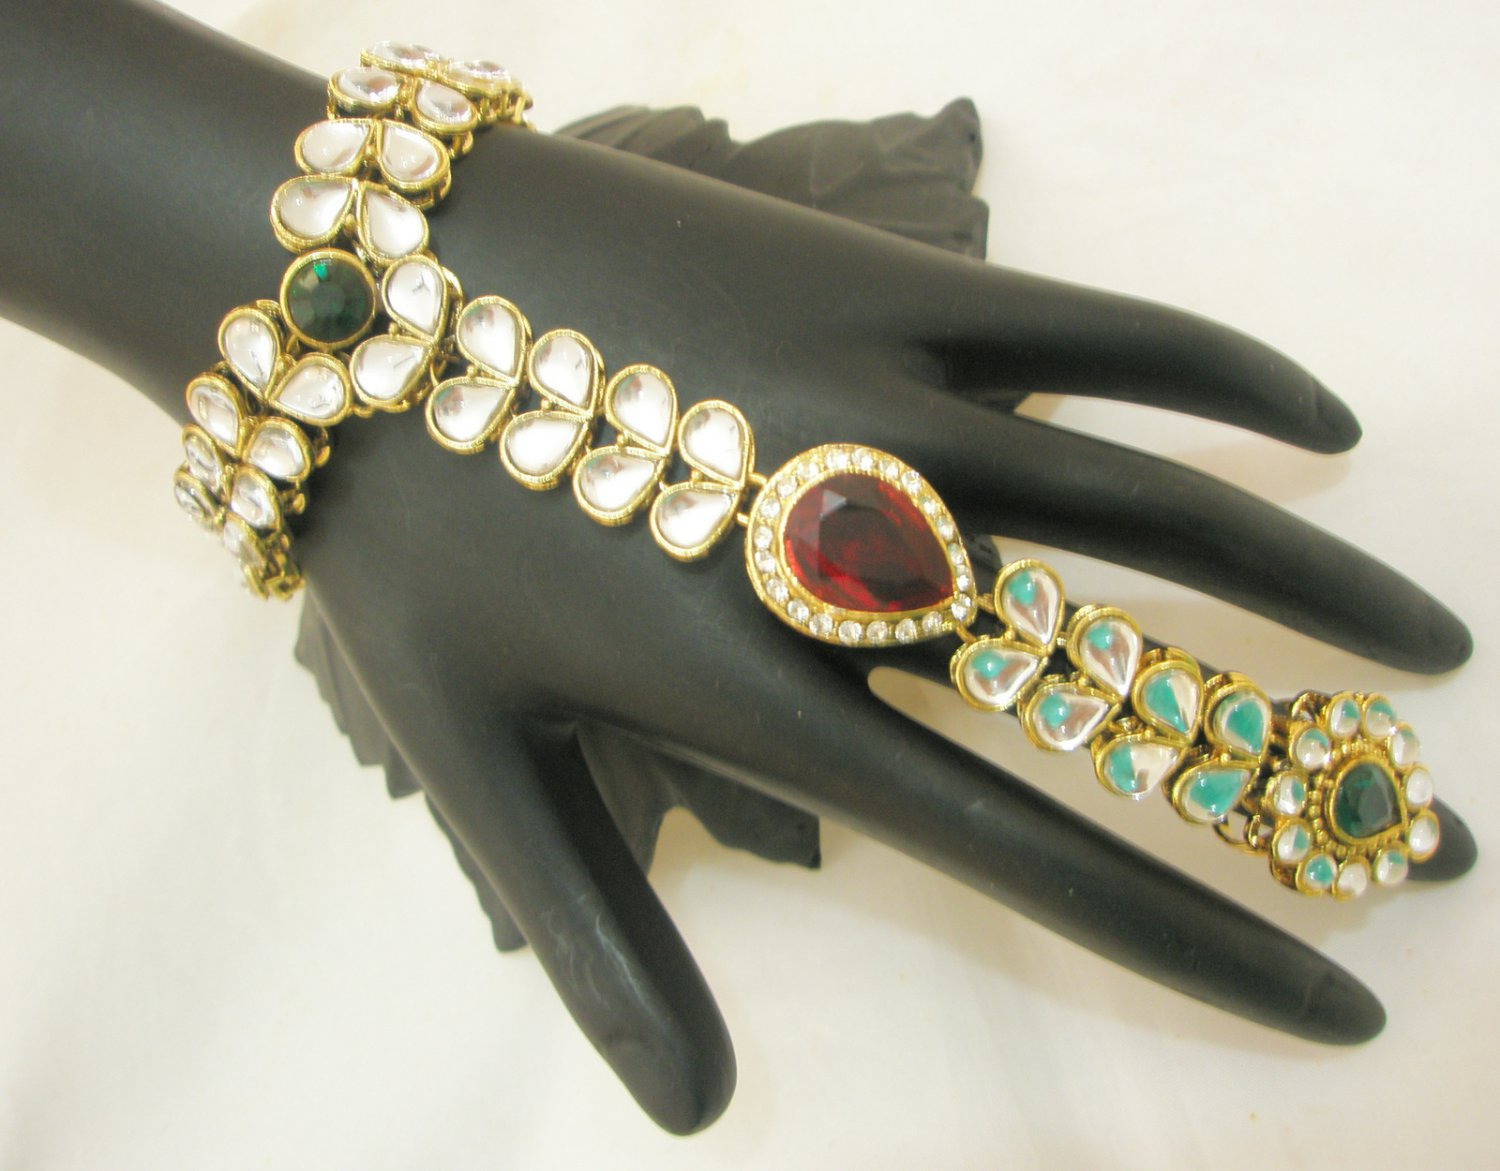 One Ring Rhinestone Slave Bracelet Pair Indian Fashion Jewellery